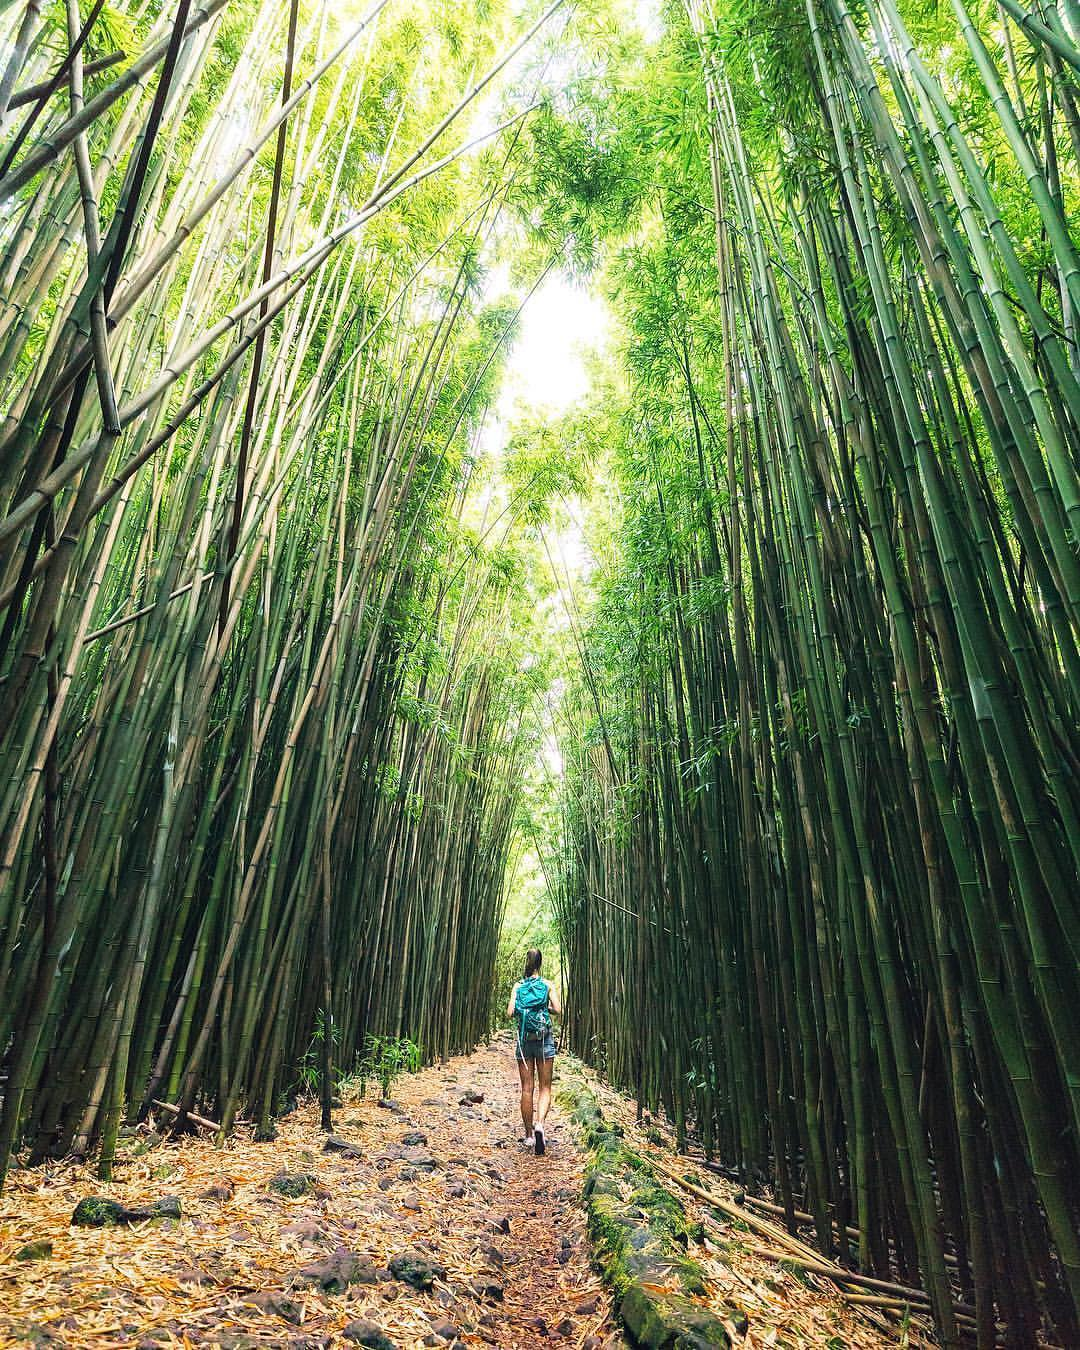 Bamboo Forest Maui - best things to do in maui hawaii